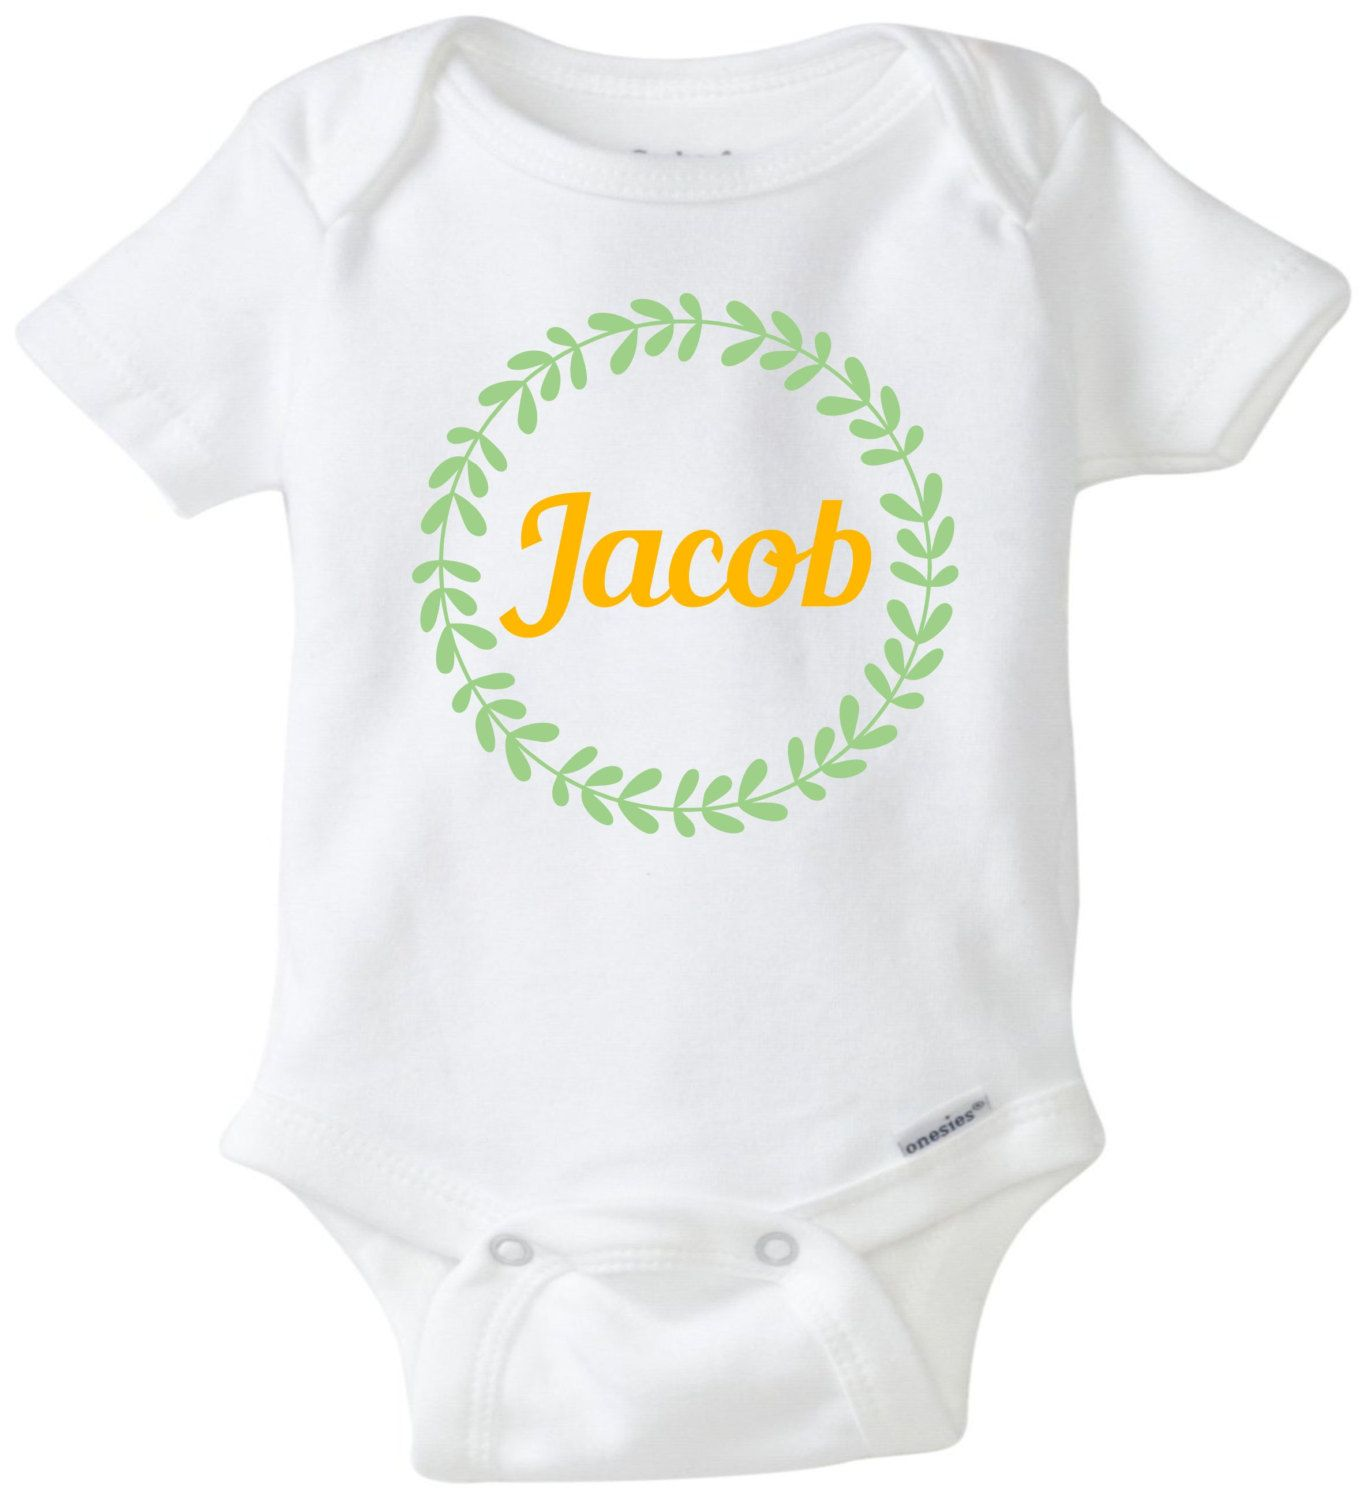 Baby onesie custom onesie personalized onesie baby boy baby gift baby onesie custom onesie personalized onesie baby boy baby gift baby shower gift coming home outfit negle Image collections